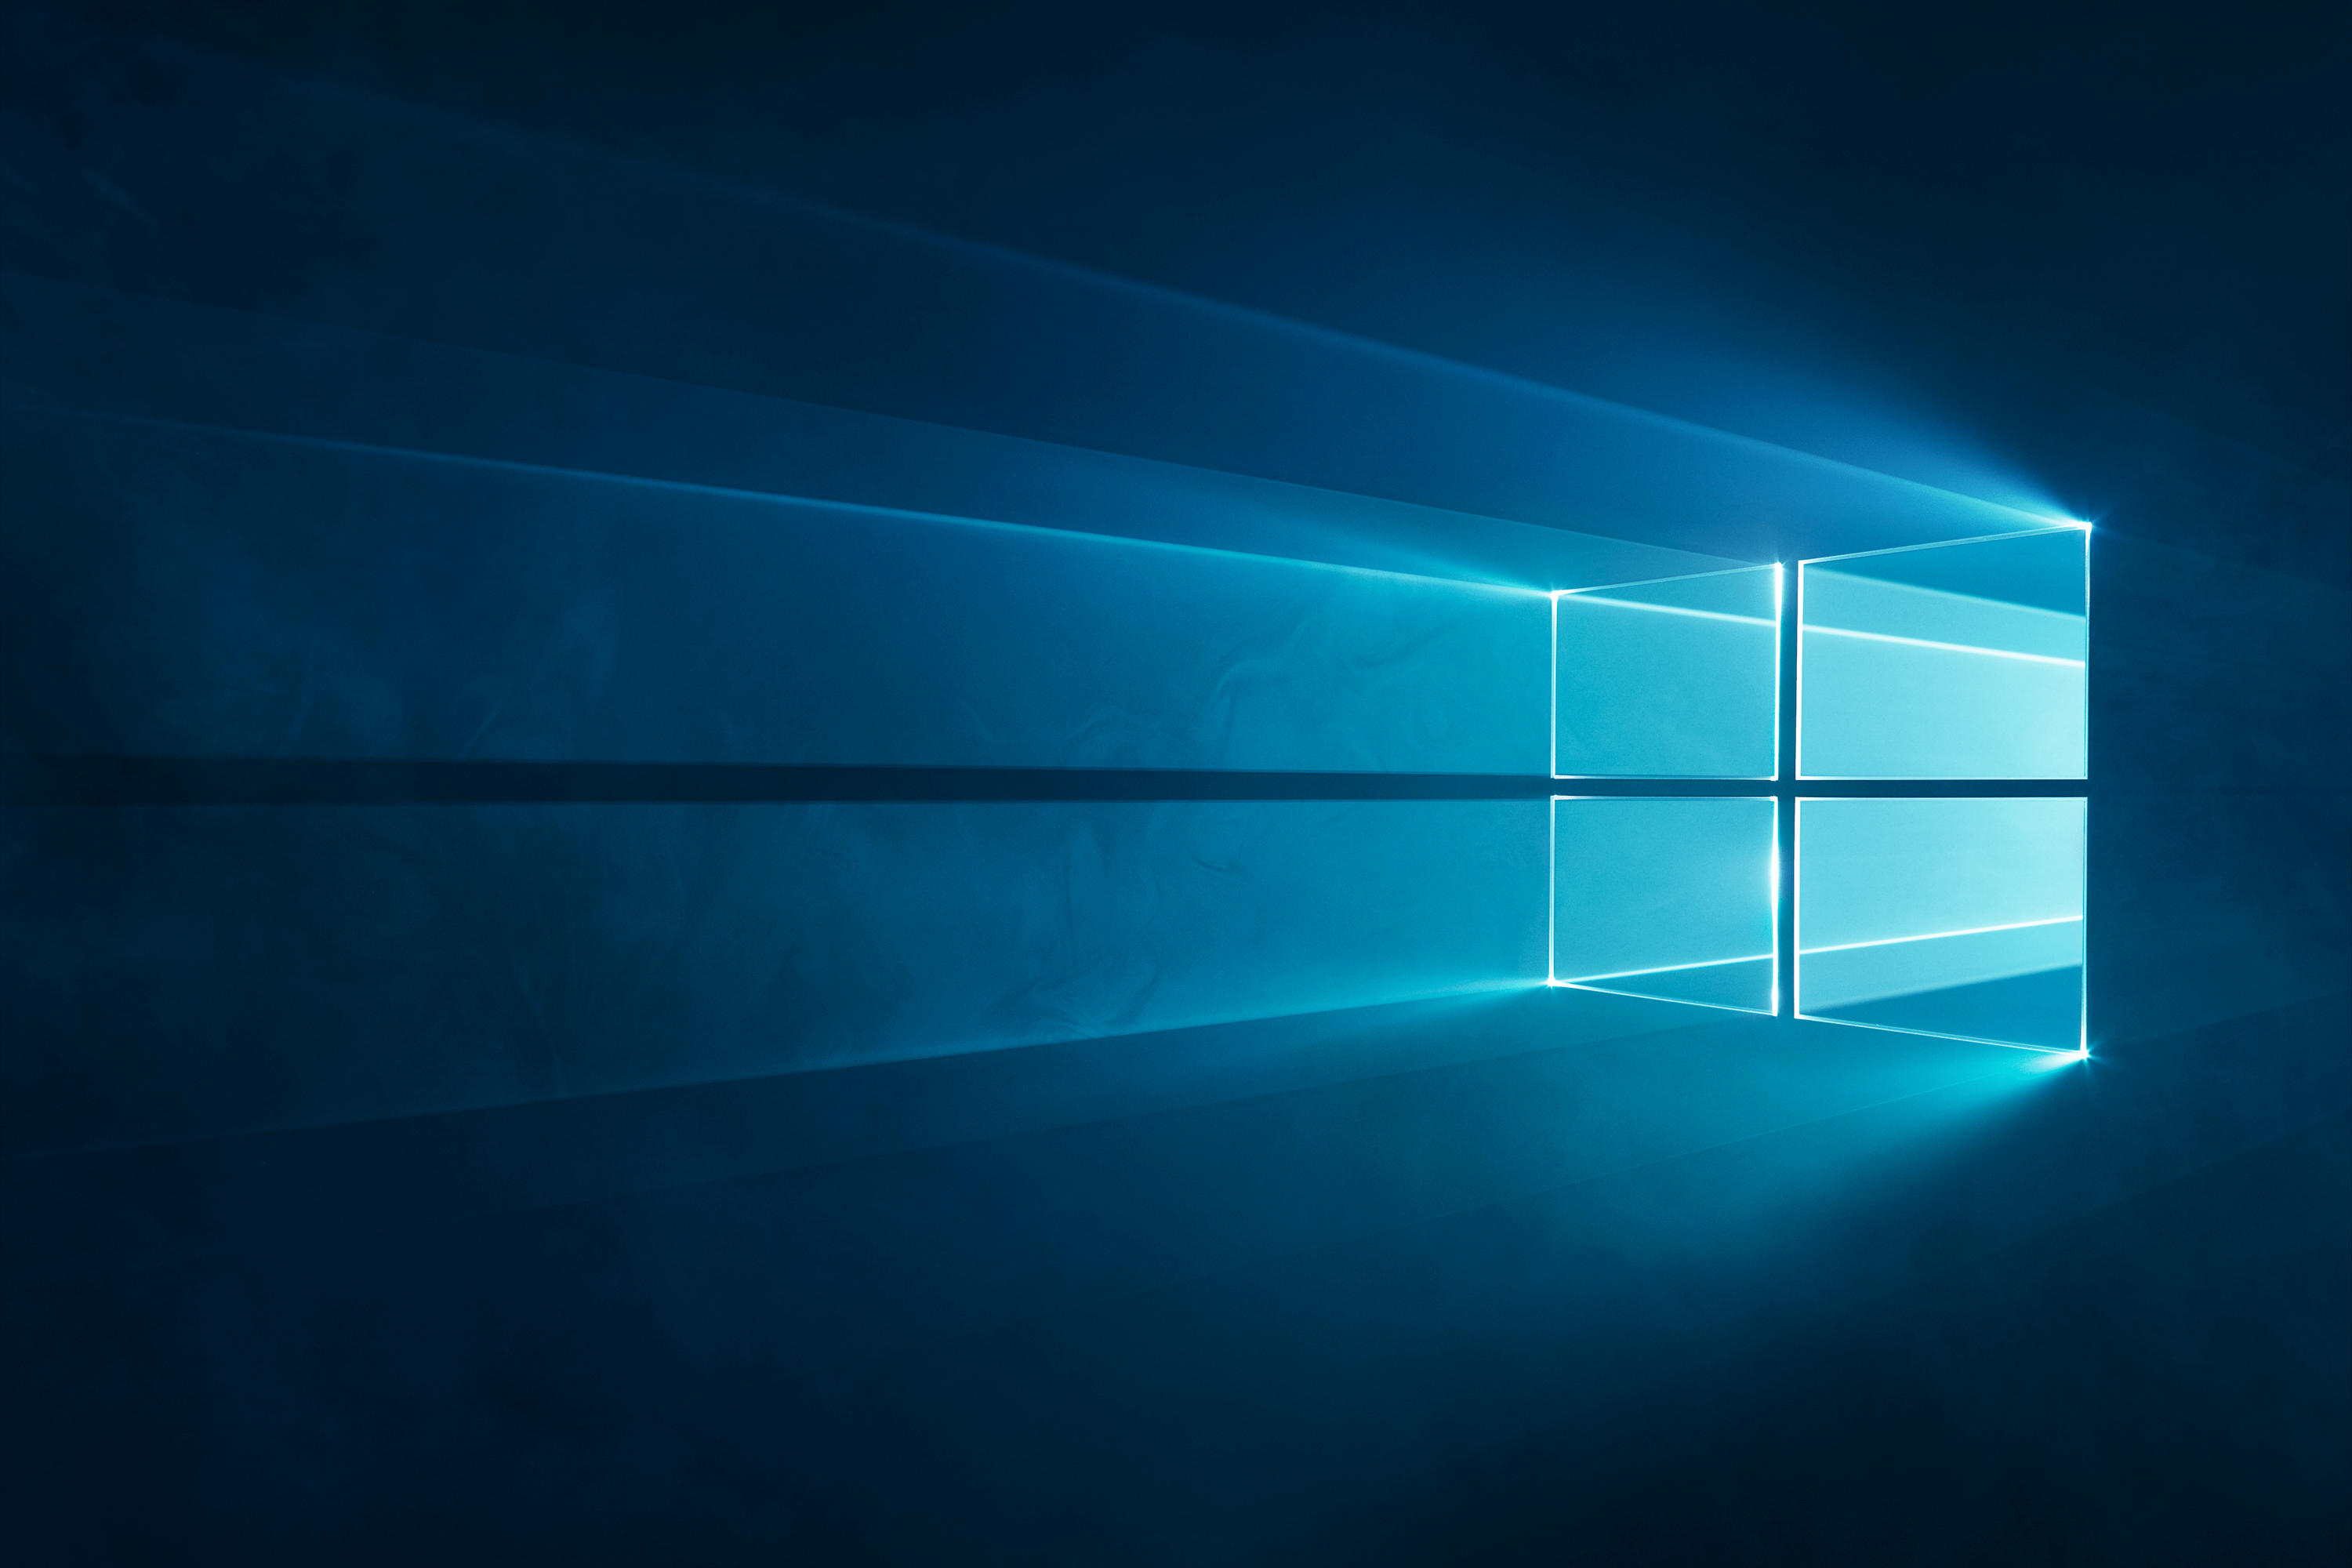 Windows 10 Desktop .www GMUNK Windows wallpaper